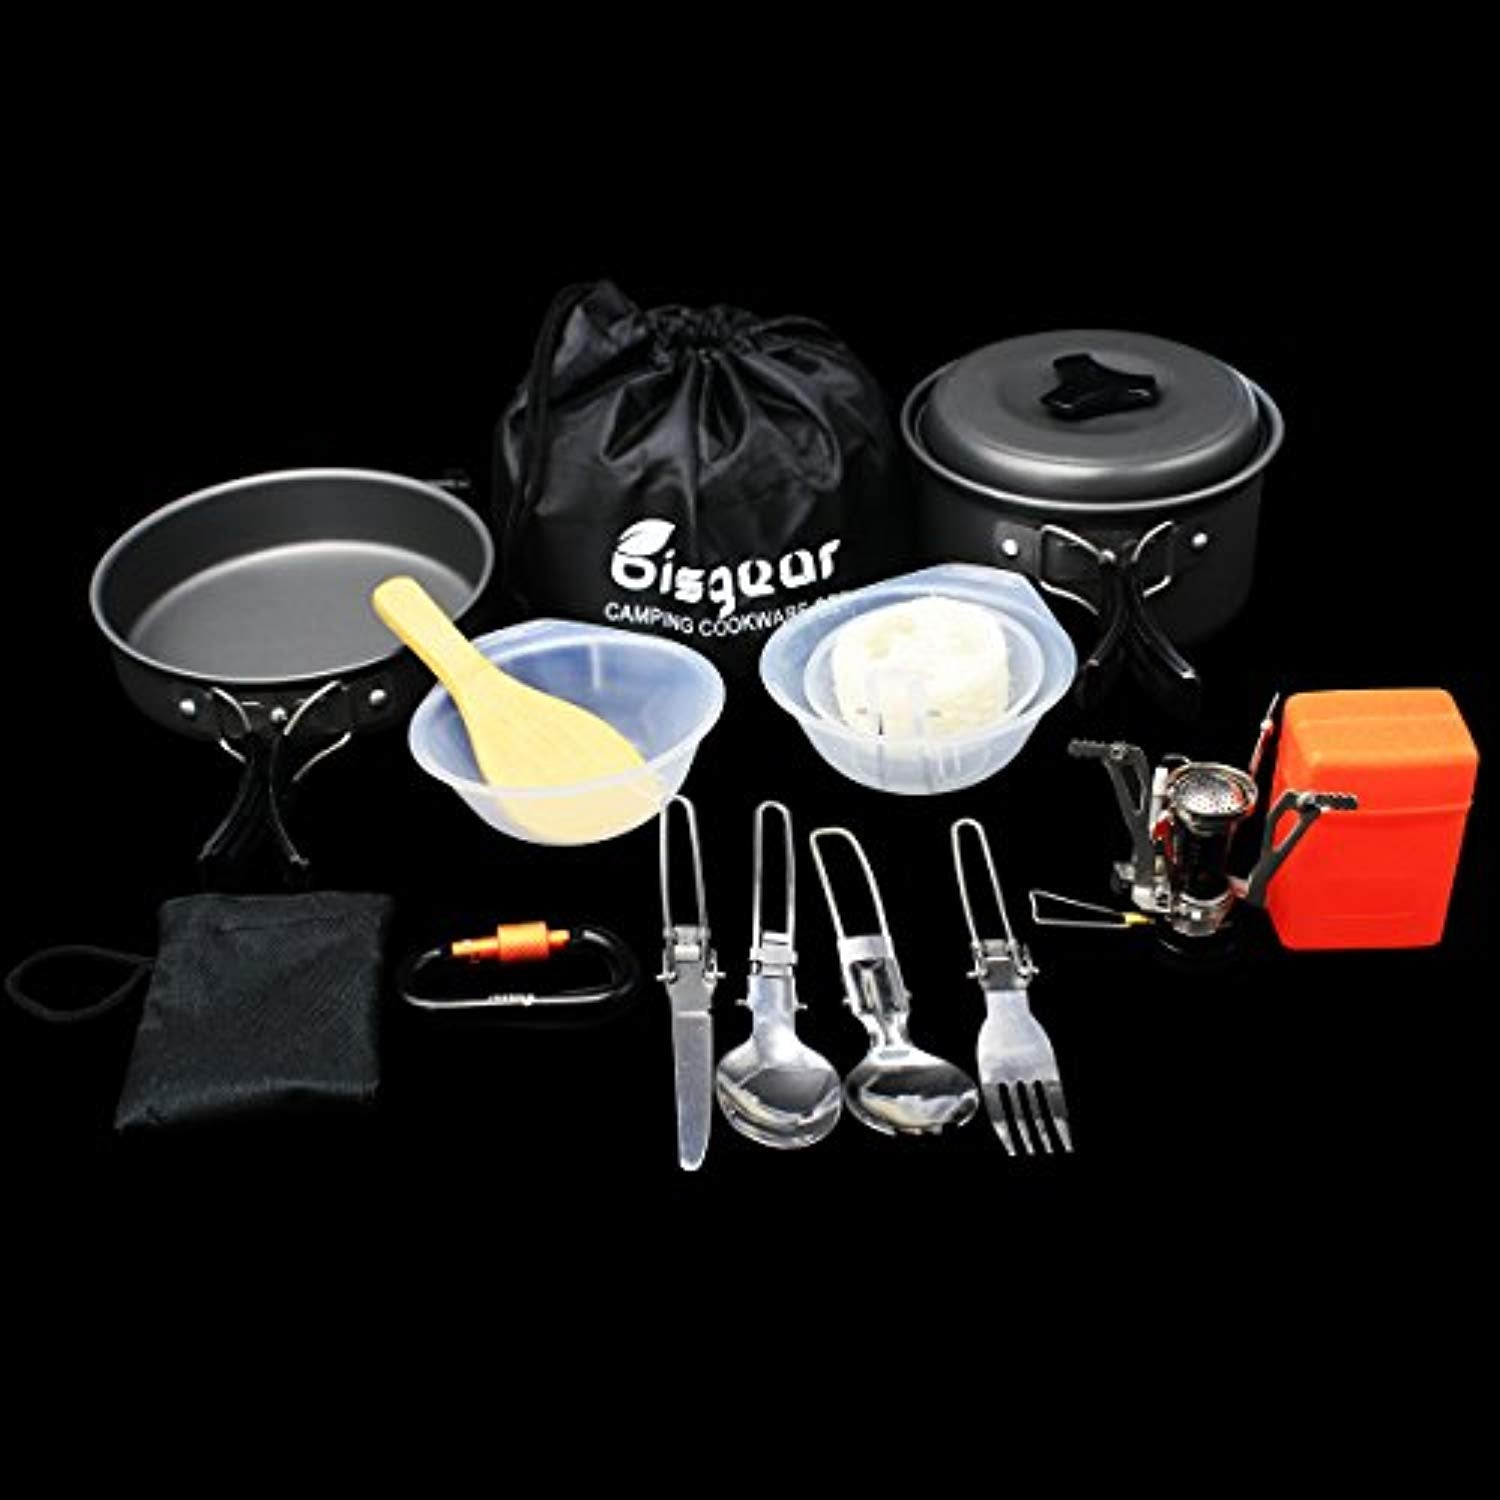 #1 Outdoor Cookware for anyone looking for a high quality, great value product for camping, backpack